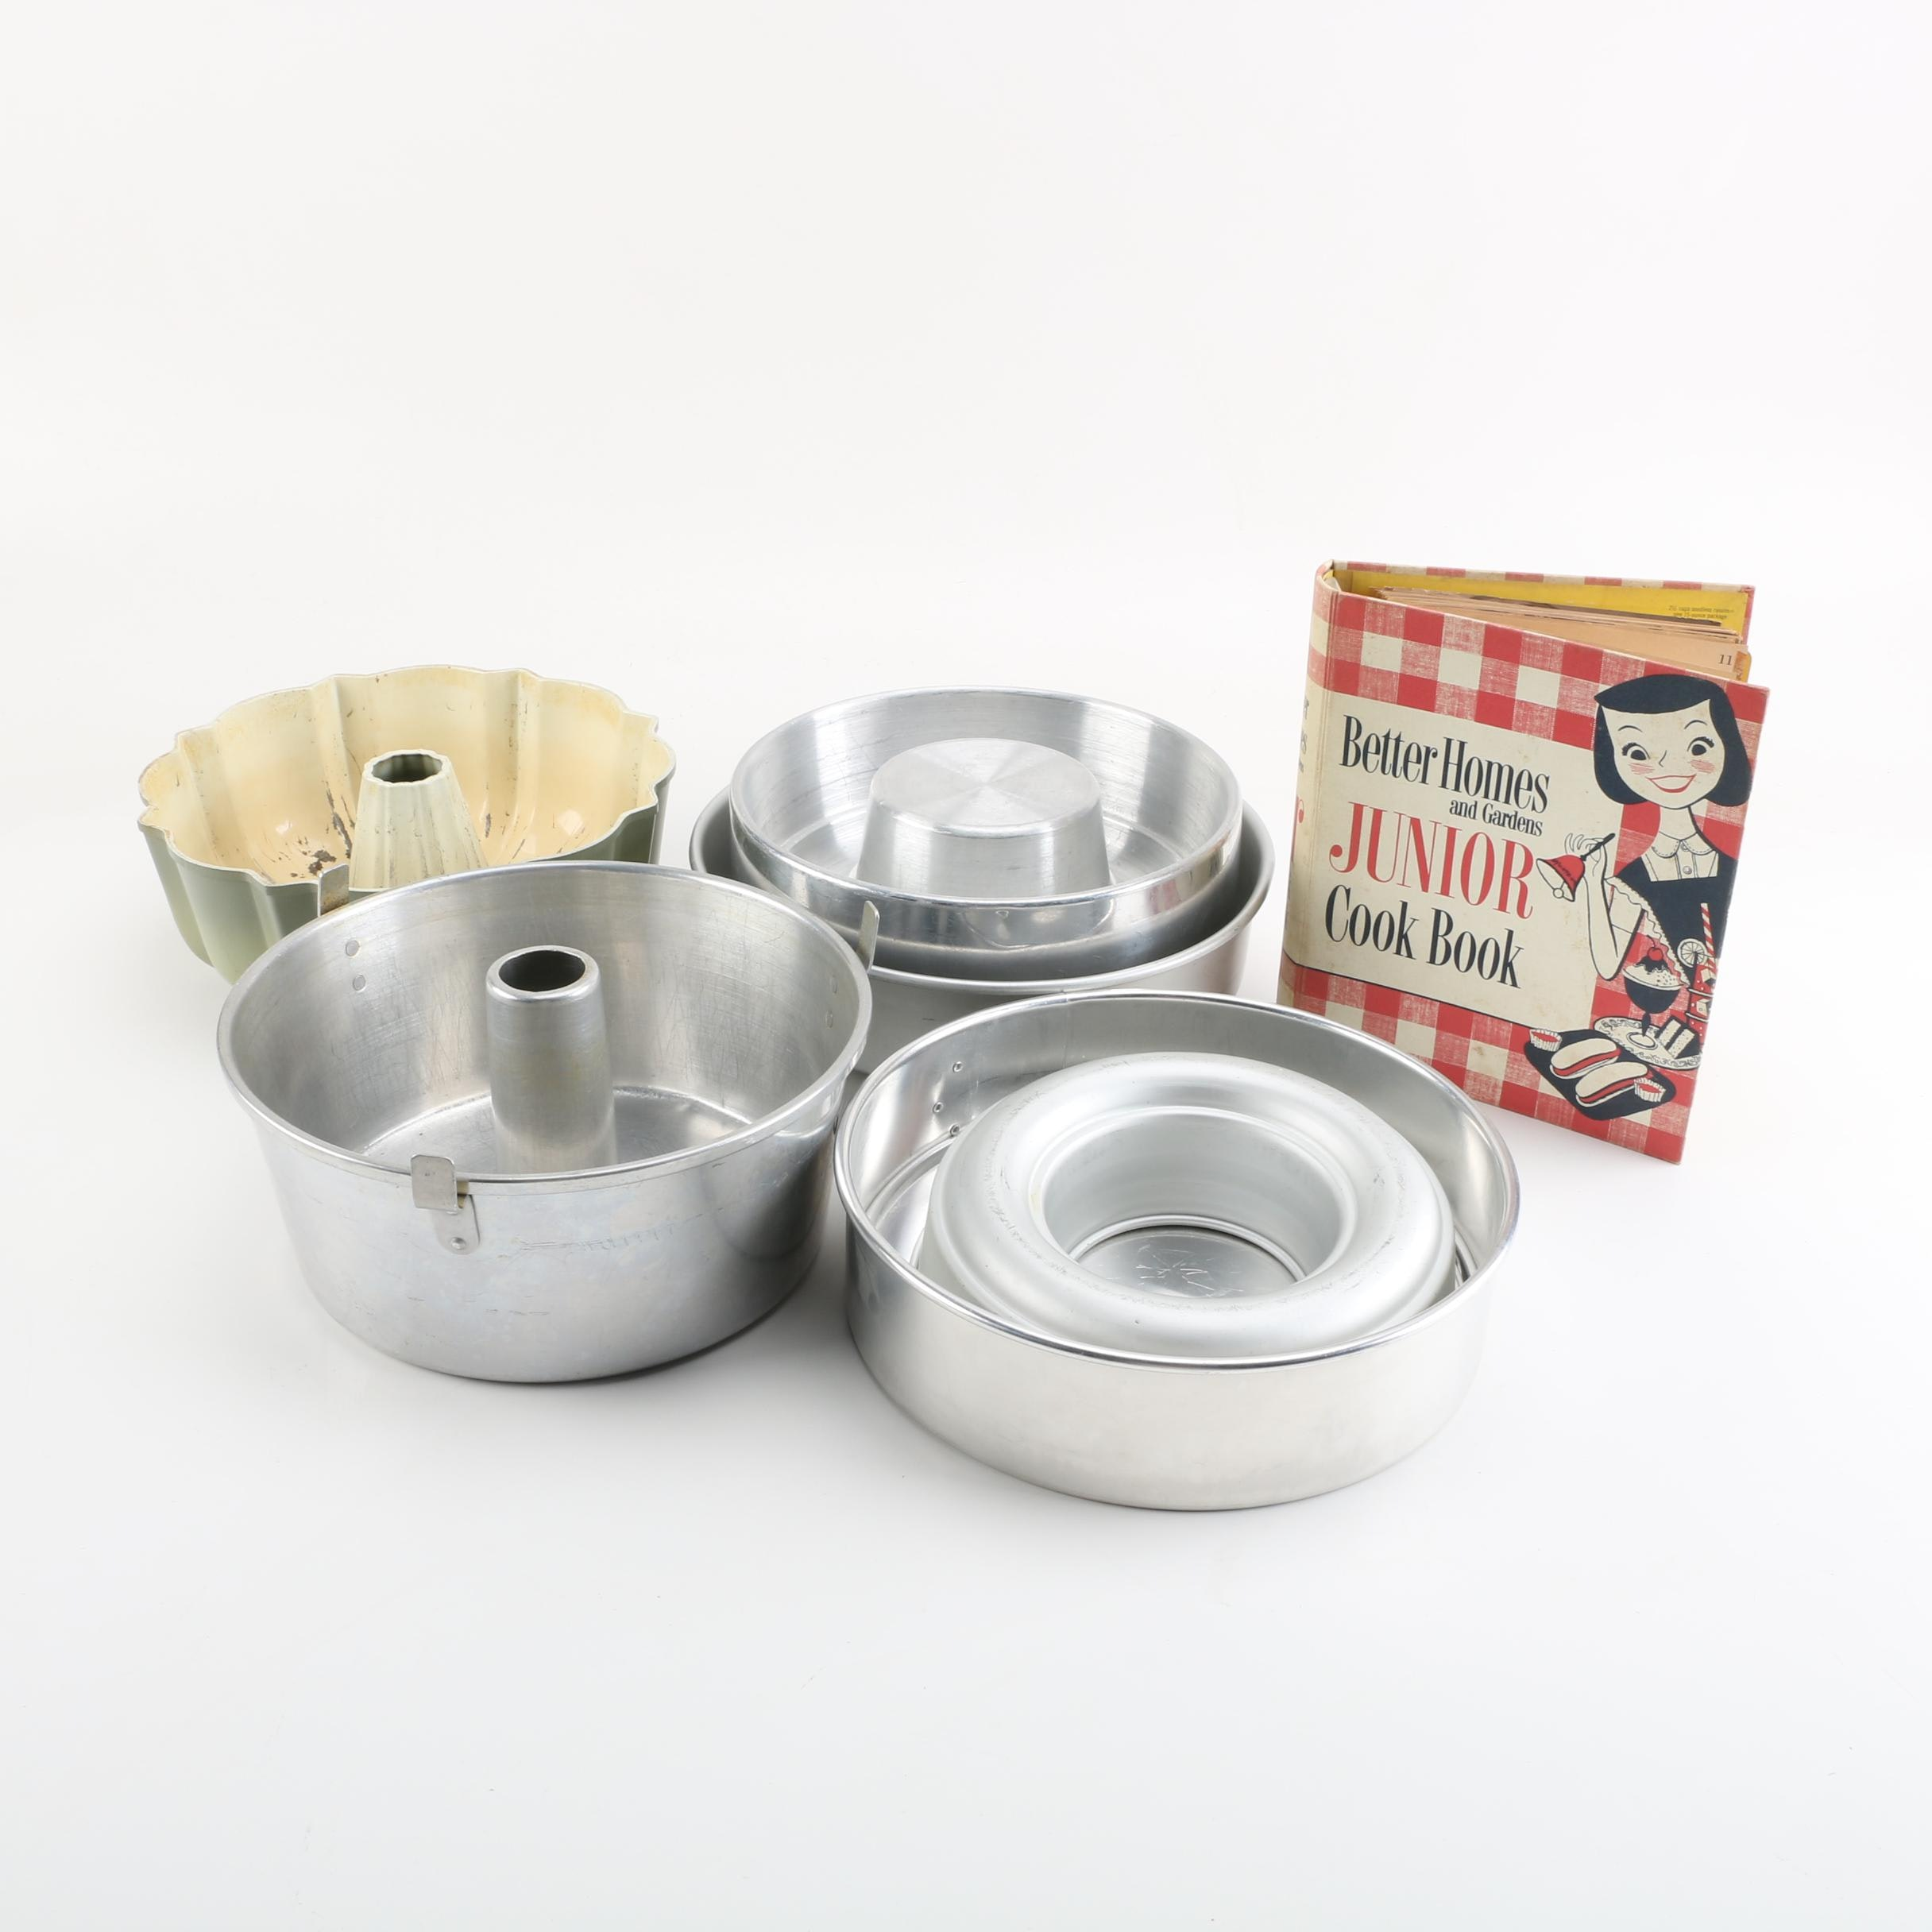 "Baking Molds Including ""Nordic Ware"" And Better Homes and Garden Junior Cookbook"